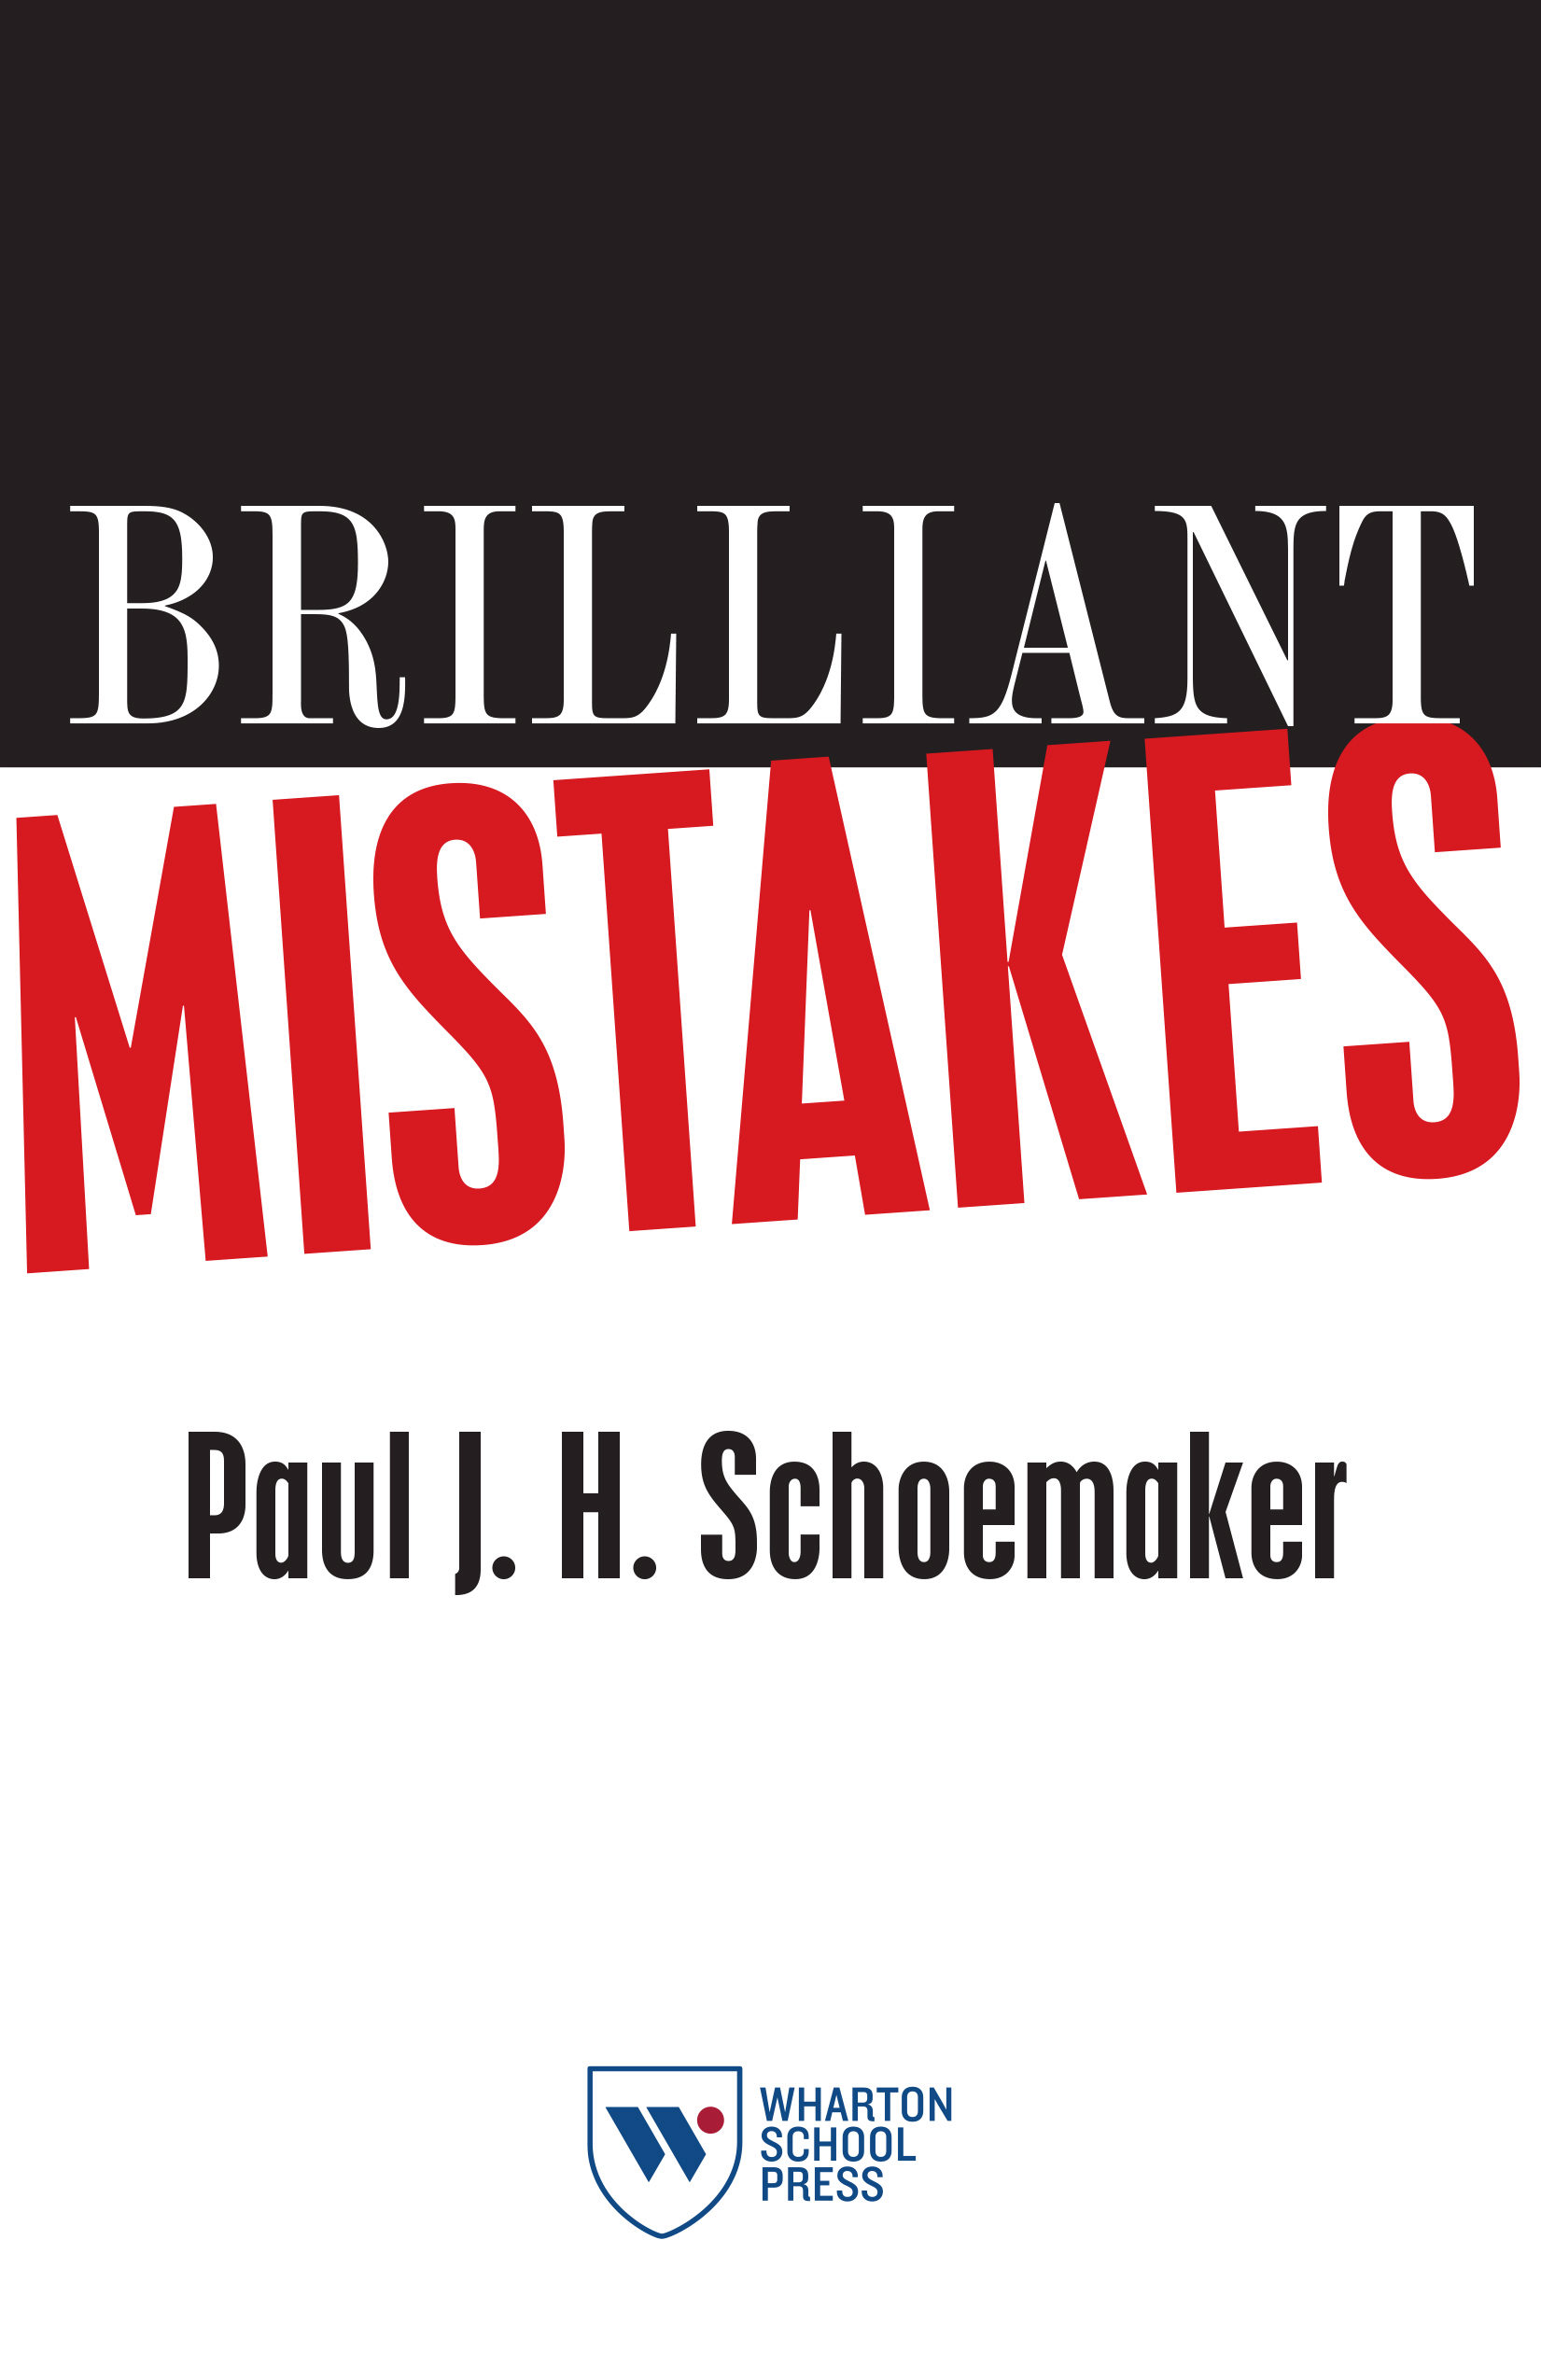 Brilliant Mistakes by Paul J. H. Schoemaker